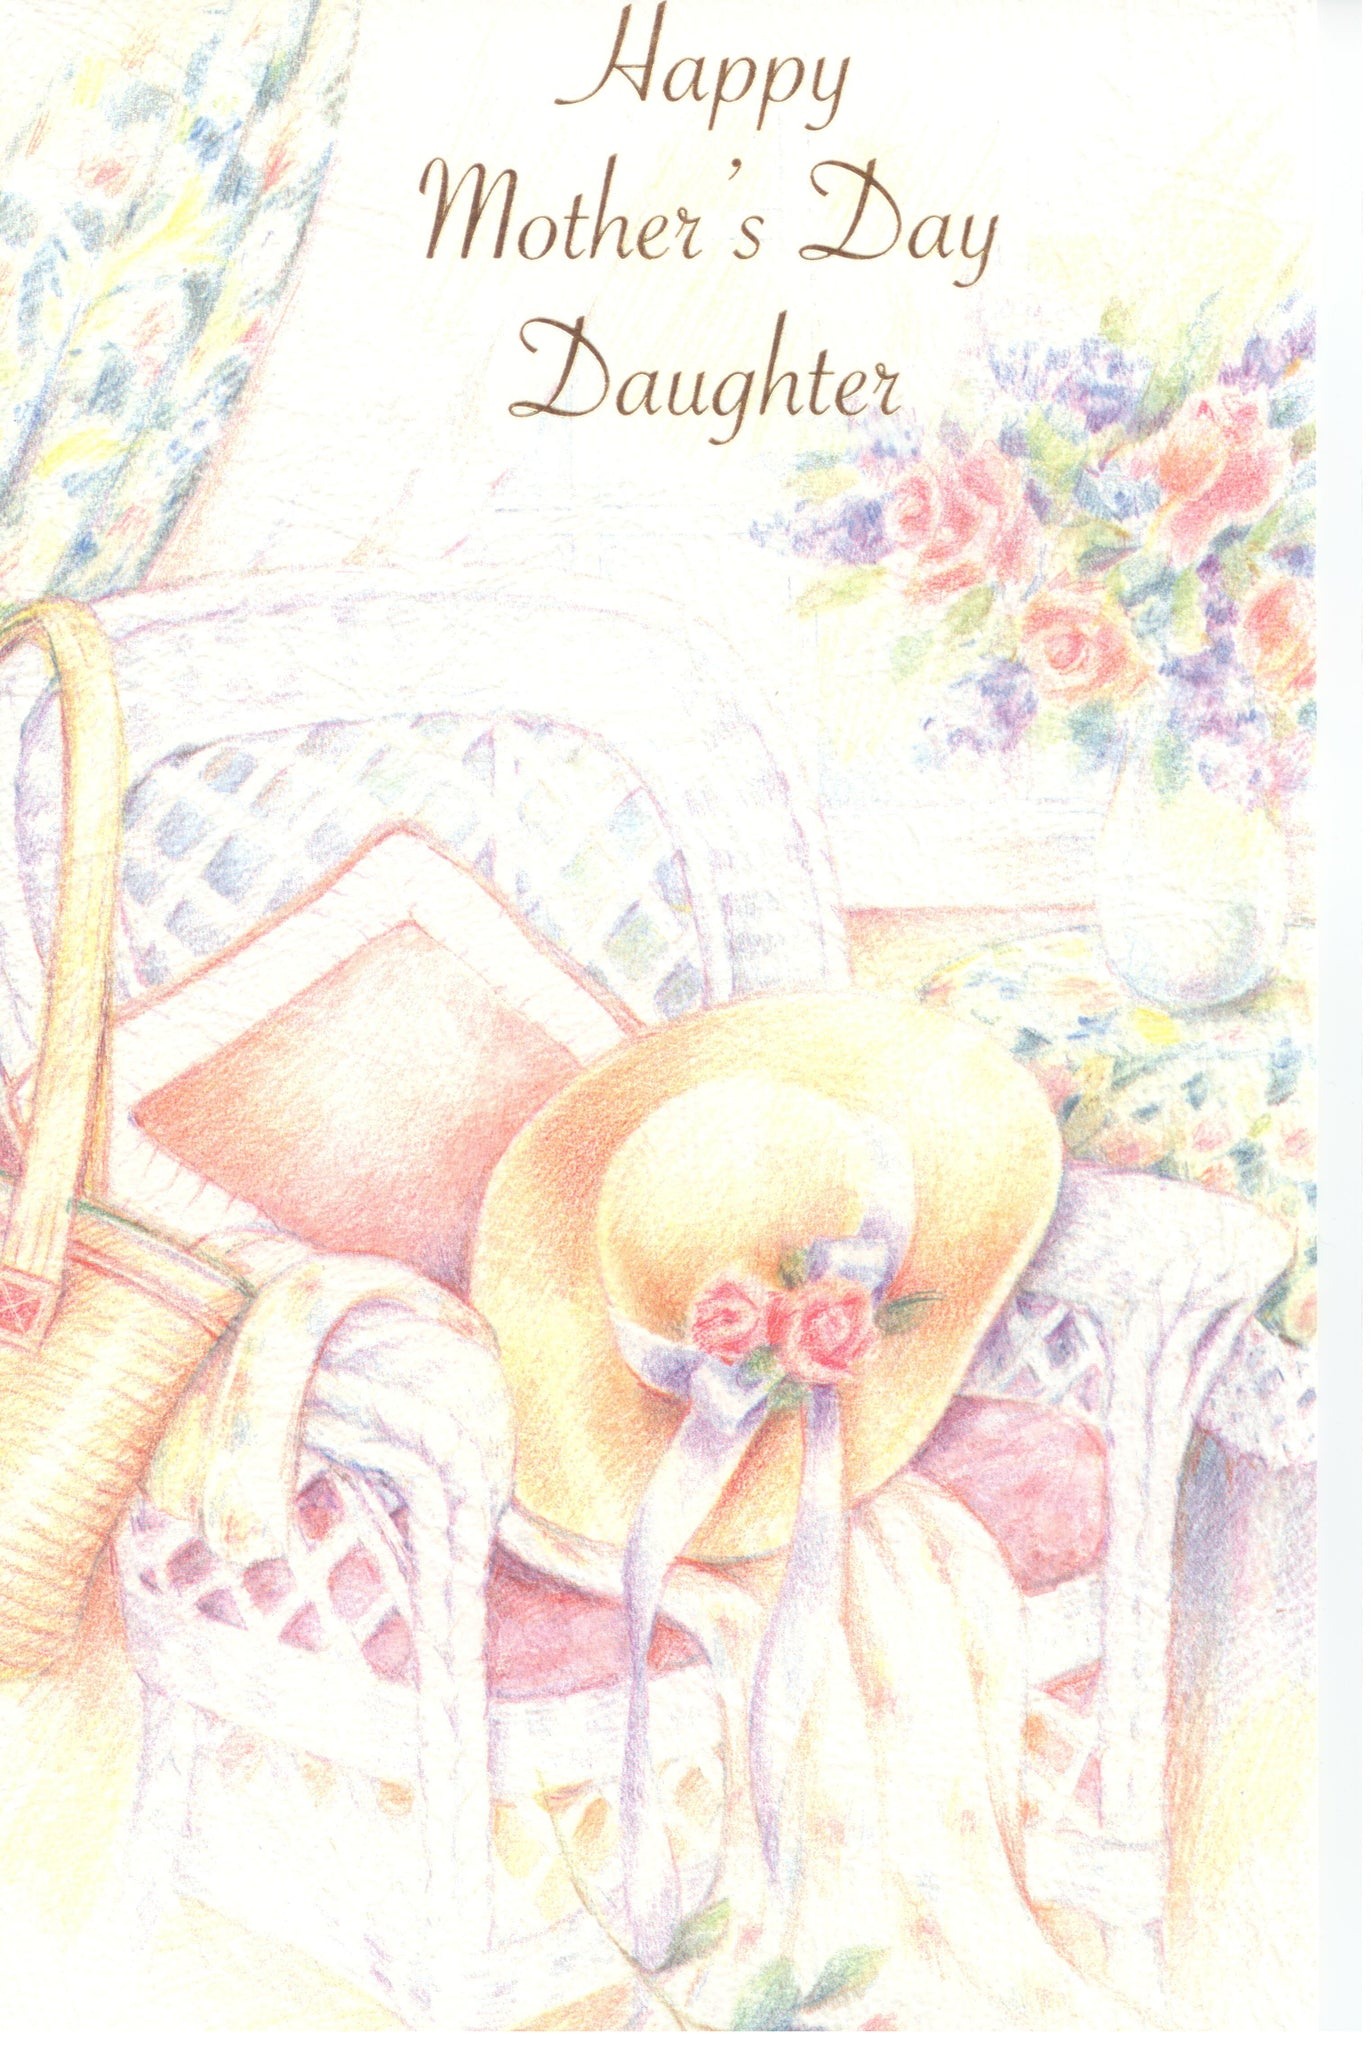 Daughter Mother's Day Card